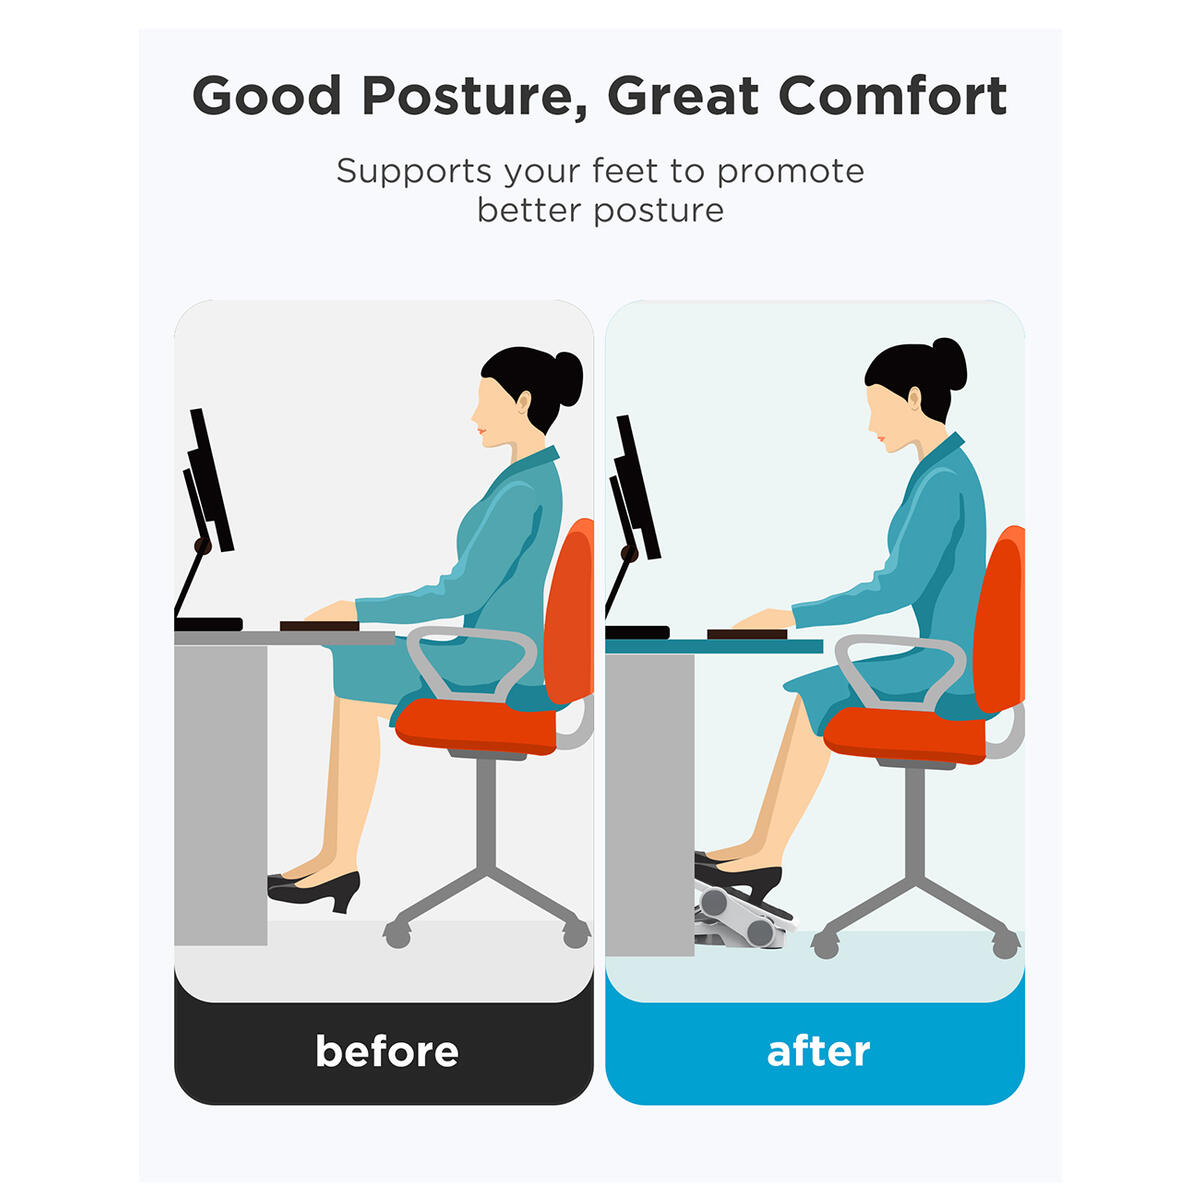 AboveTEK Ergonomic Footrest with 2 Adjustable Height Positions, 30 Degree Tilt Angle, Under Desk Foot Rest for Home & Office Desk Accessories, Non-Skid Feet for Stability, Black & Gray Foot Stool